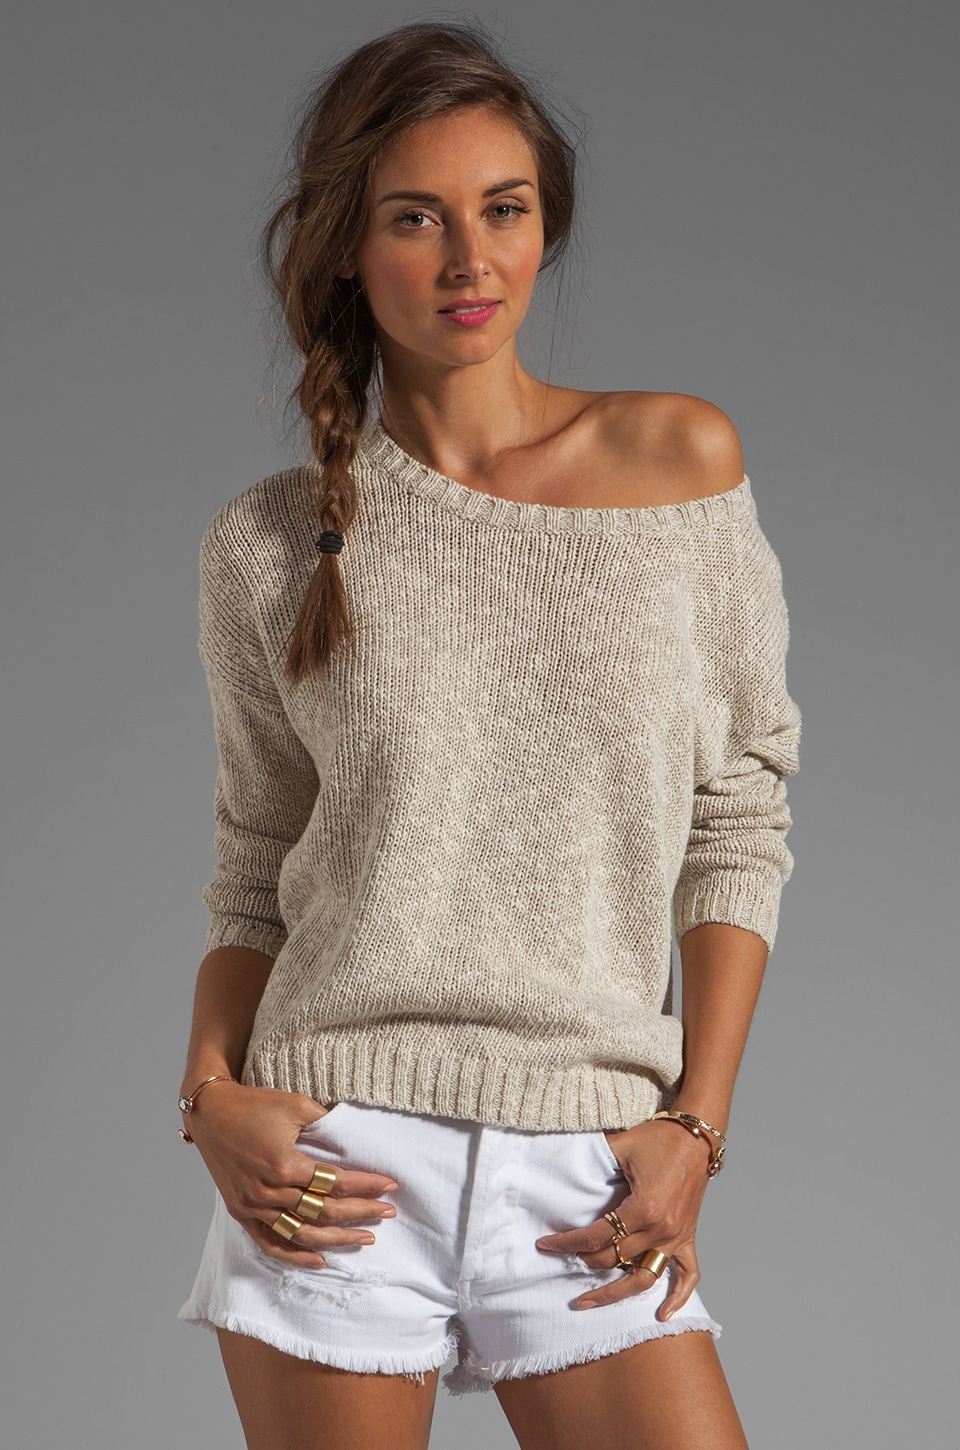 Vince Long-Sleeve Square Sweater in Natural